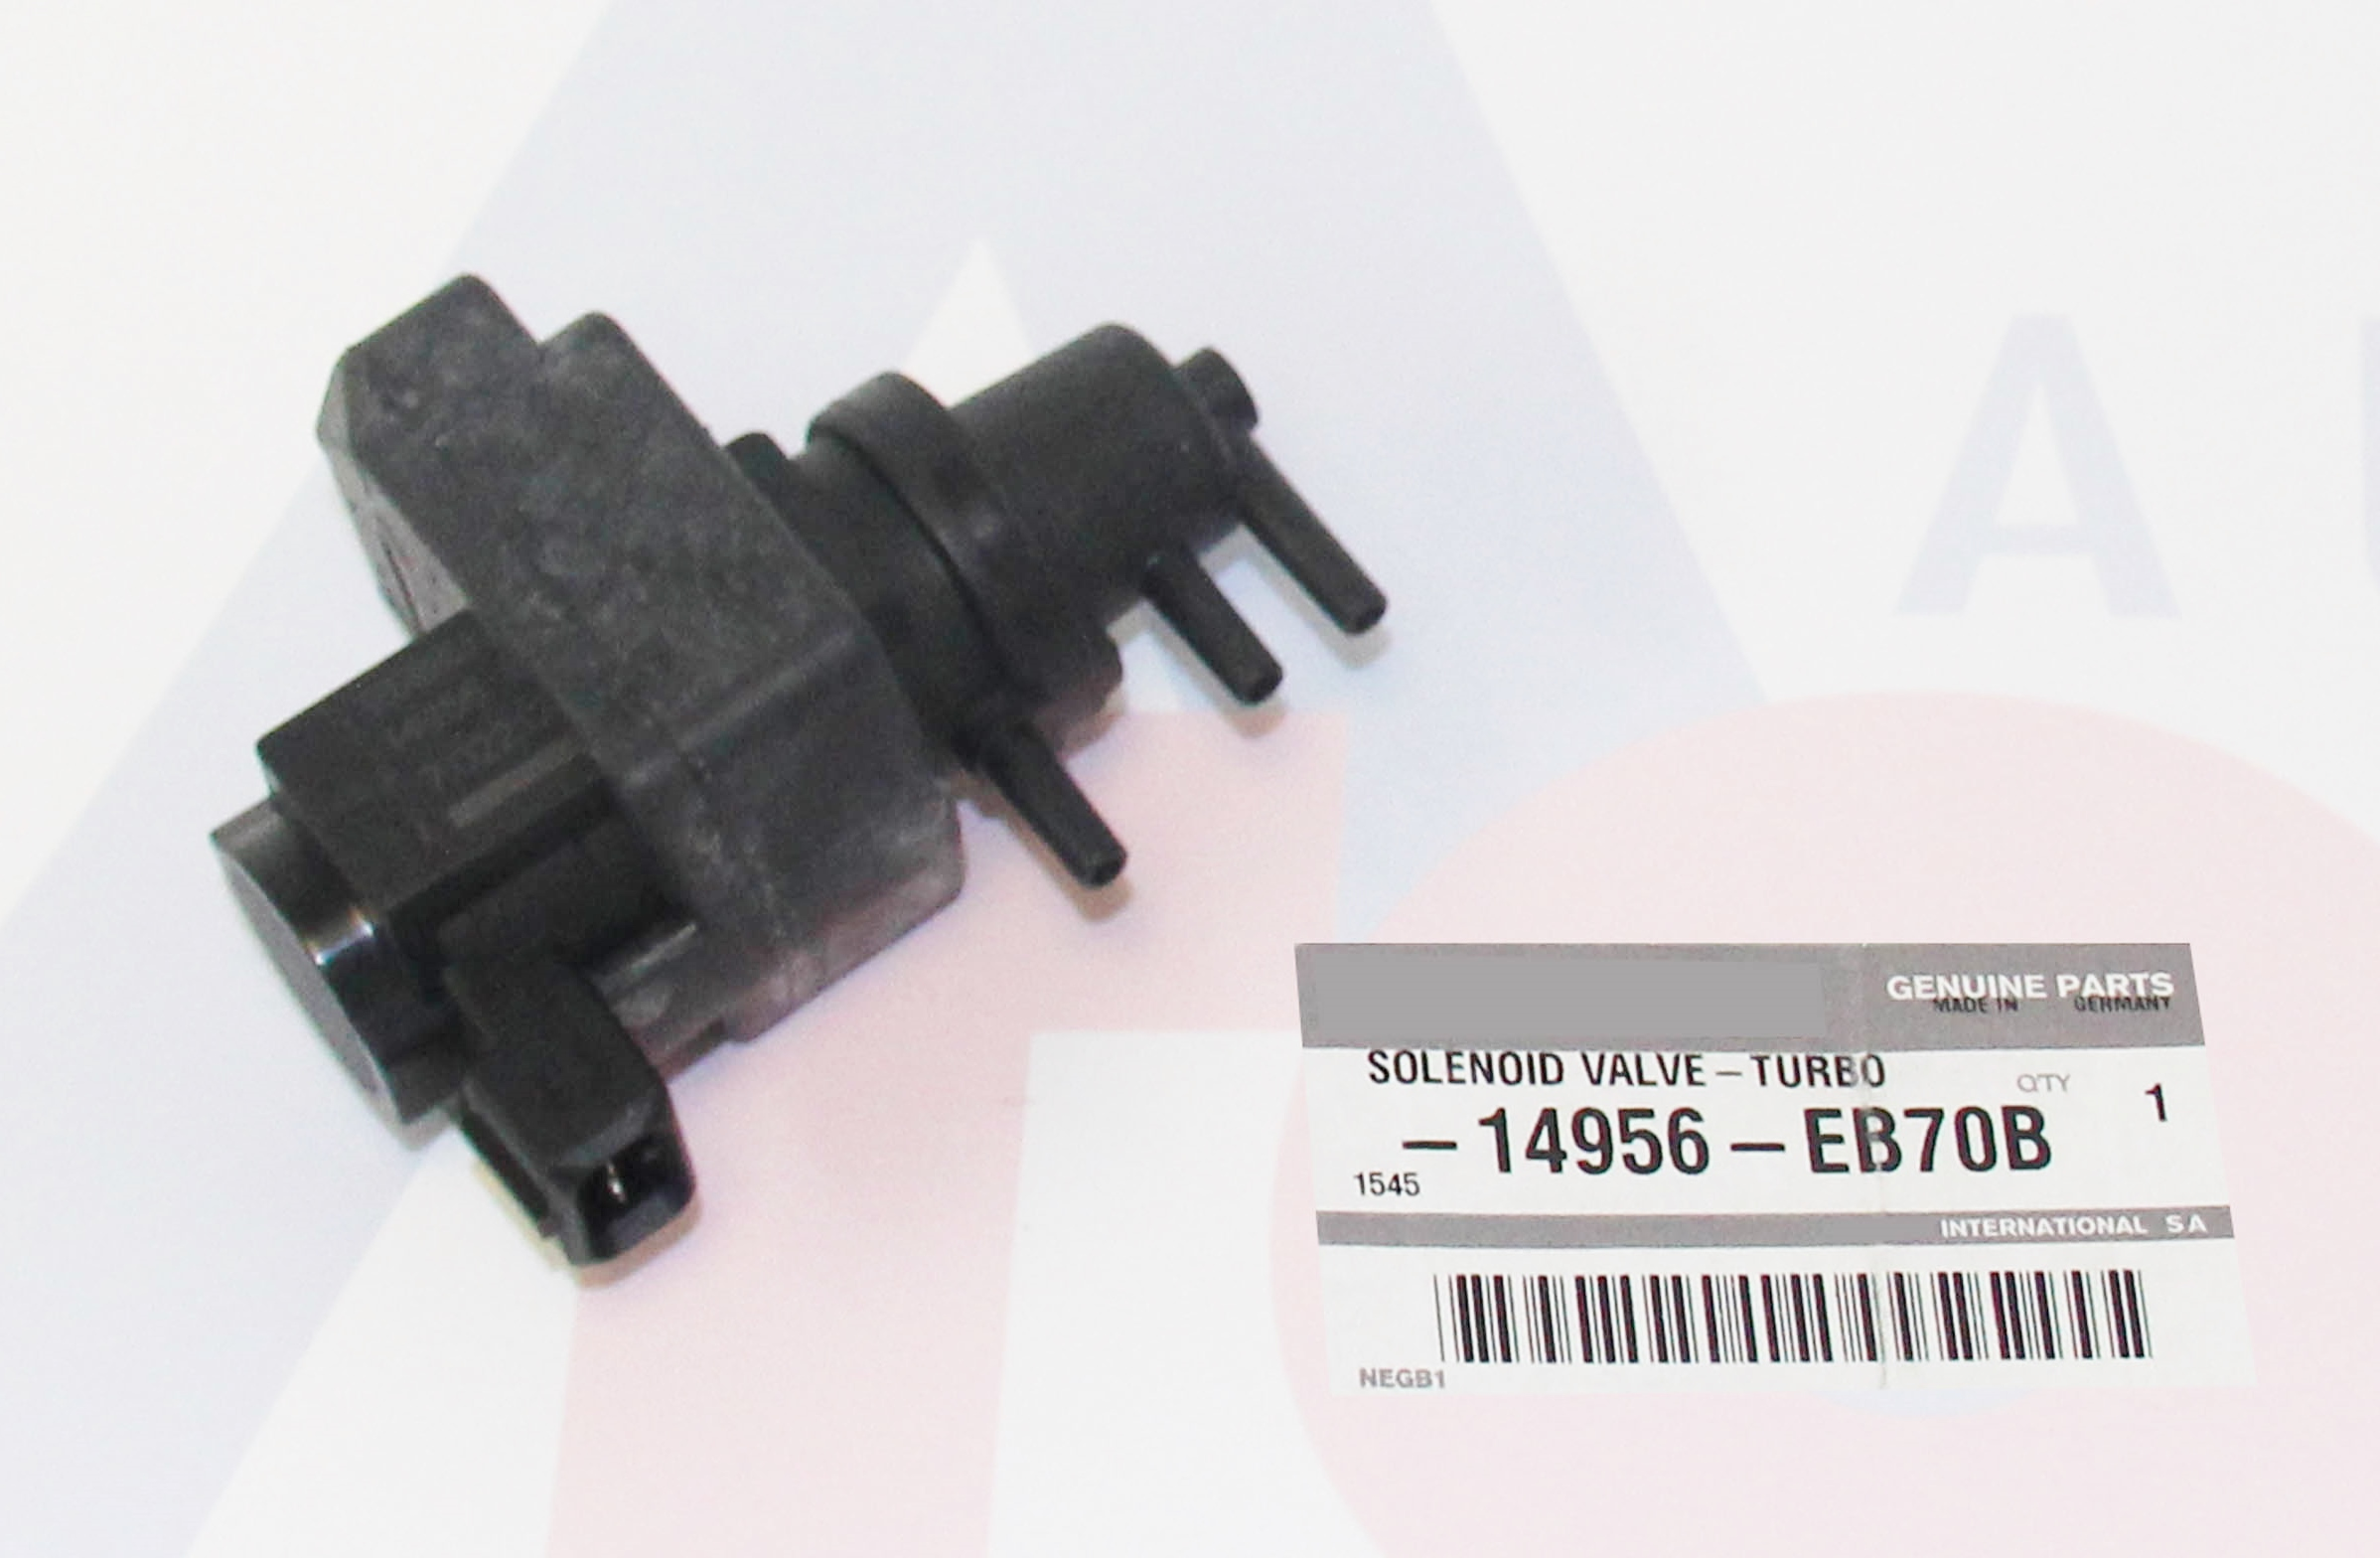 OEM Genuine Turbo vacuum switching valve to fit Nissan D40 navara and R51  Pathfinder with YD25 engines *** see further information***